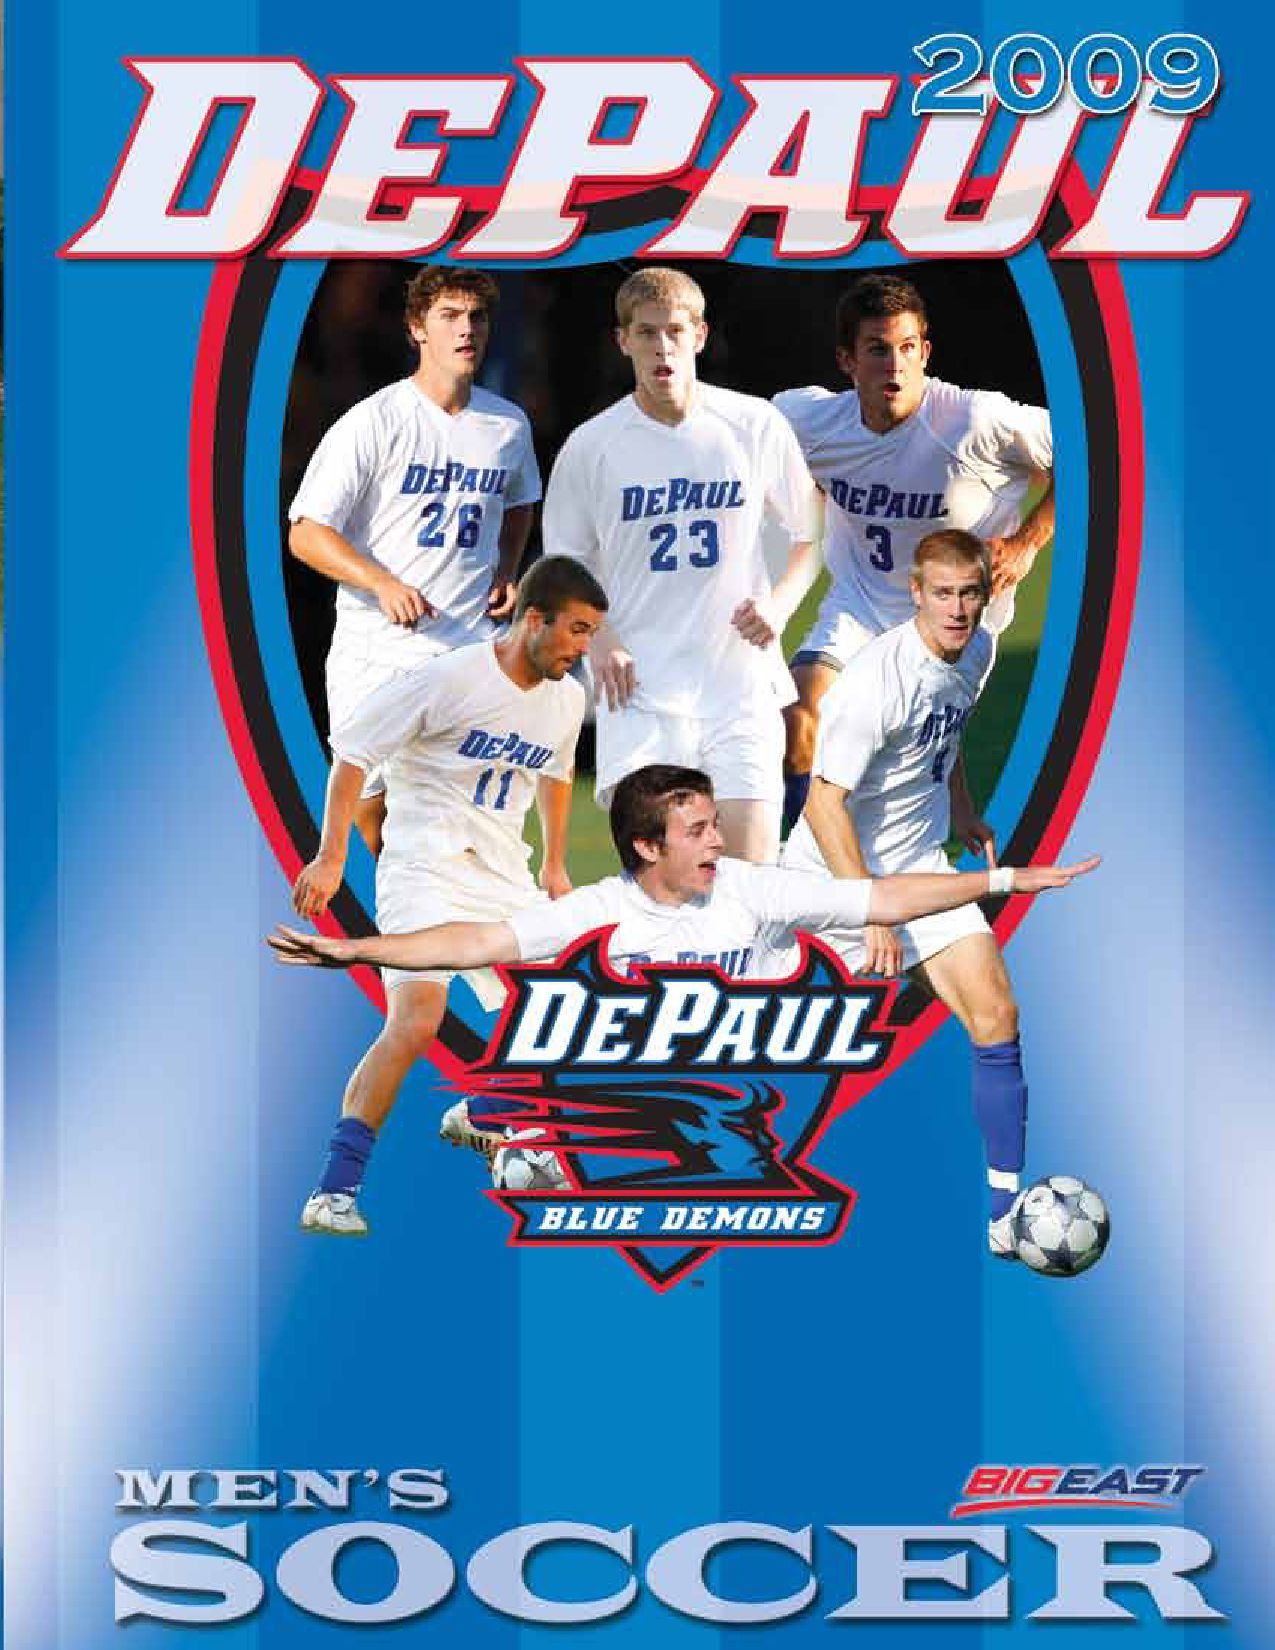 2009 DePaul Men's Soccer Media Guide by DePaul Athletics - issuu